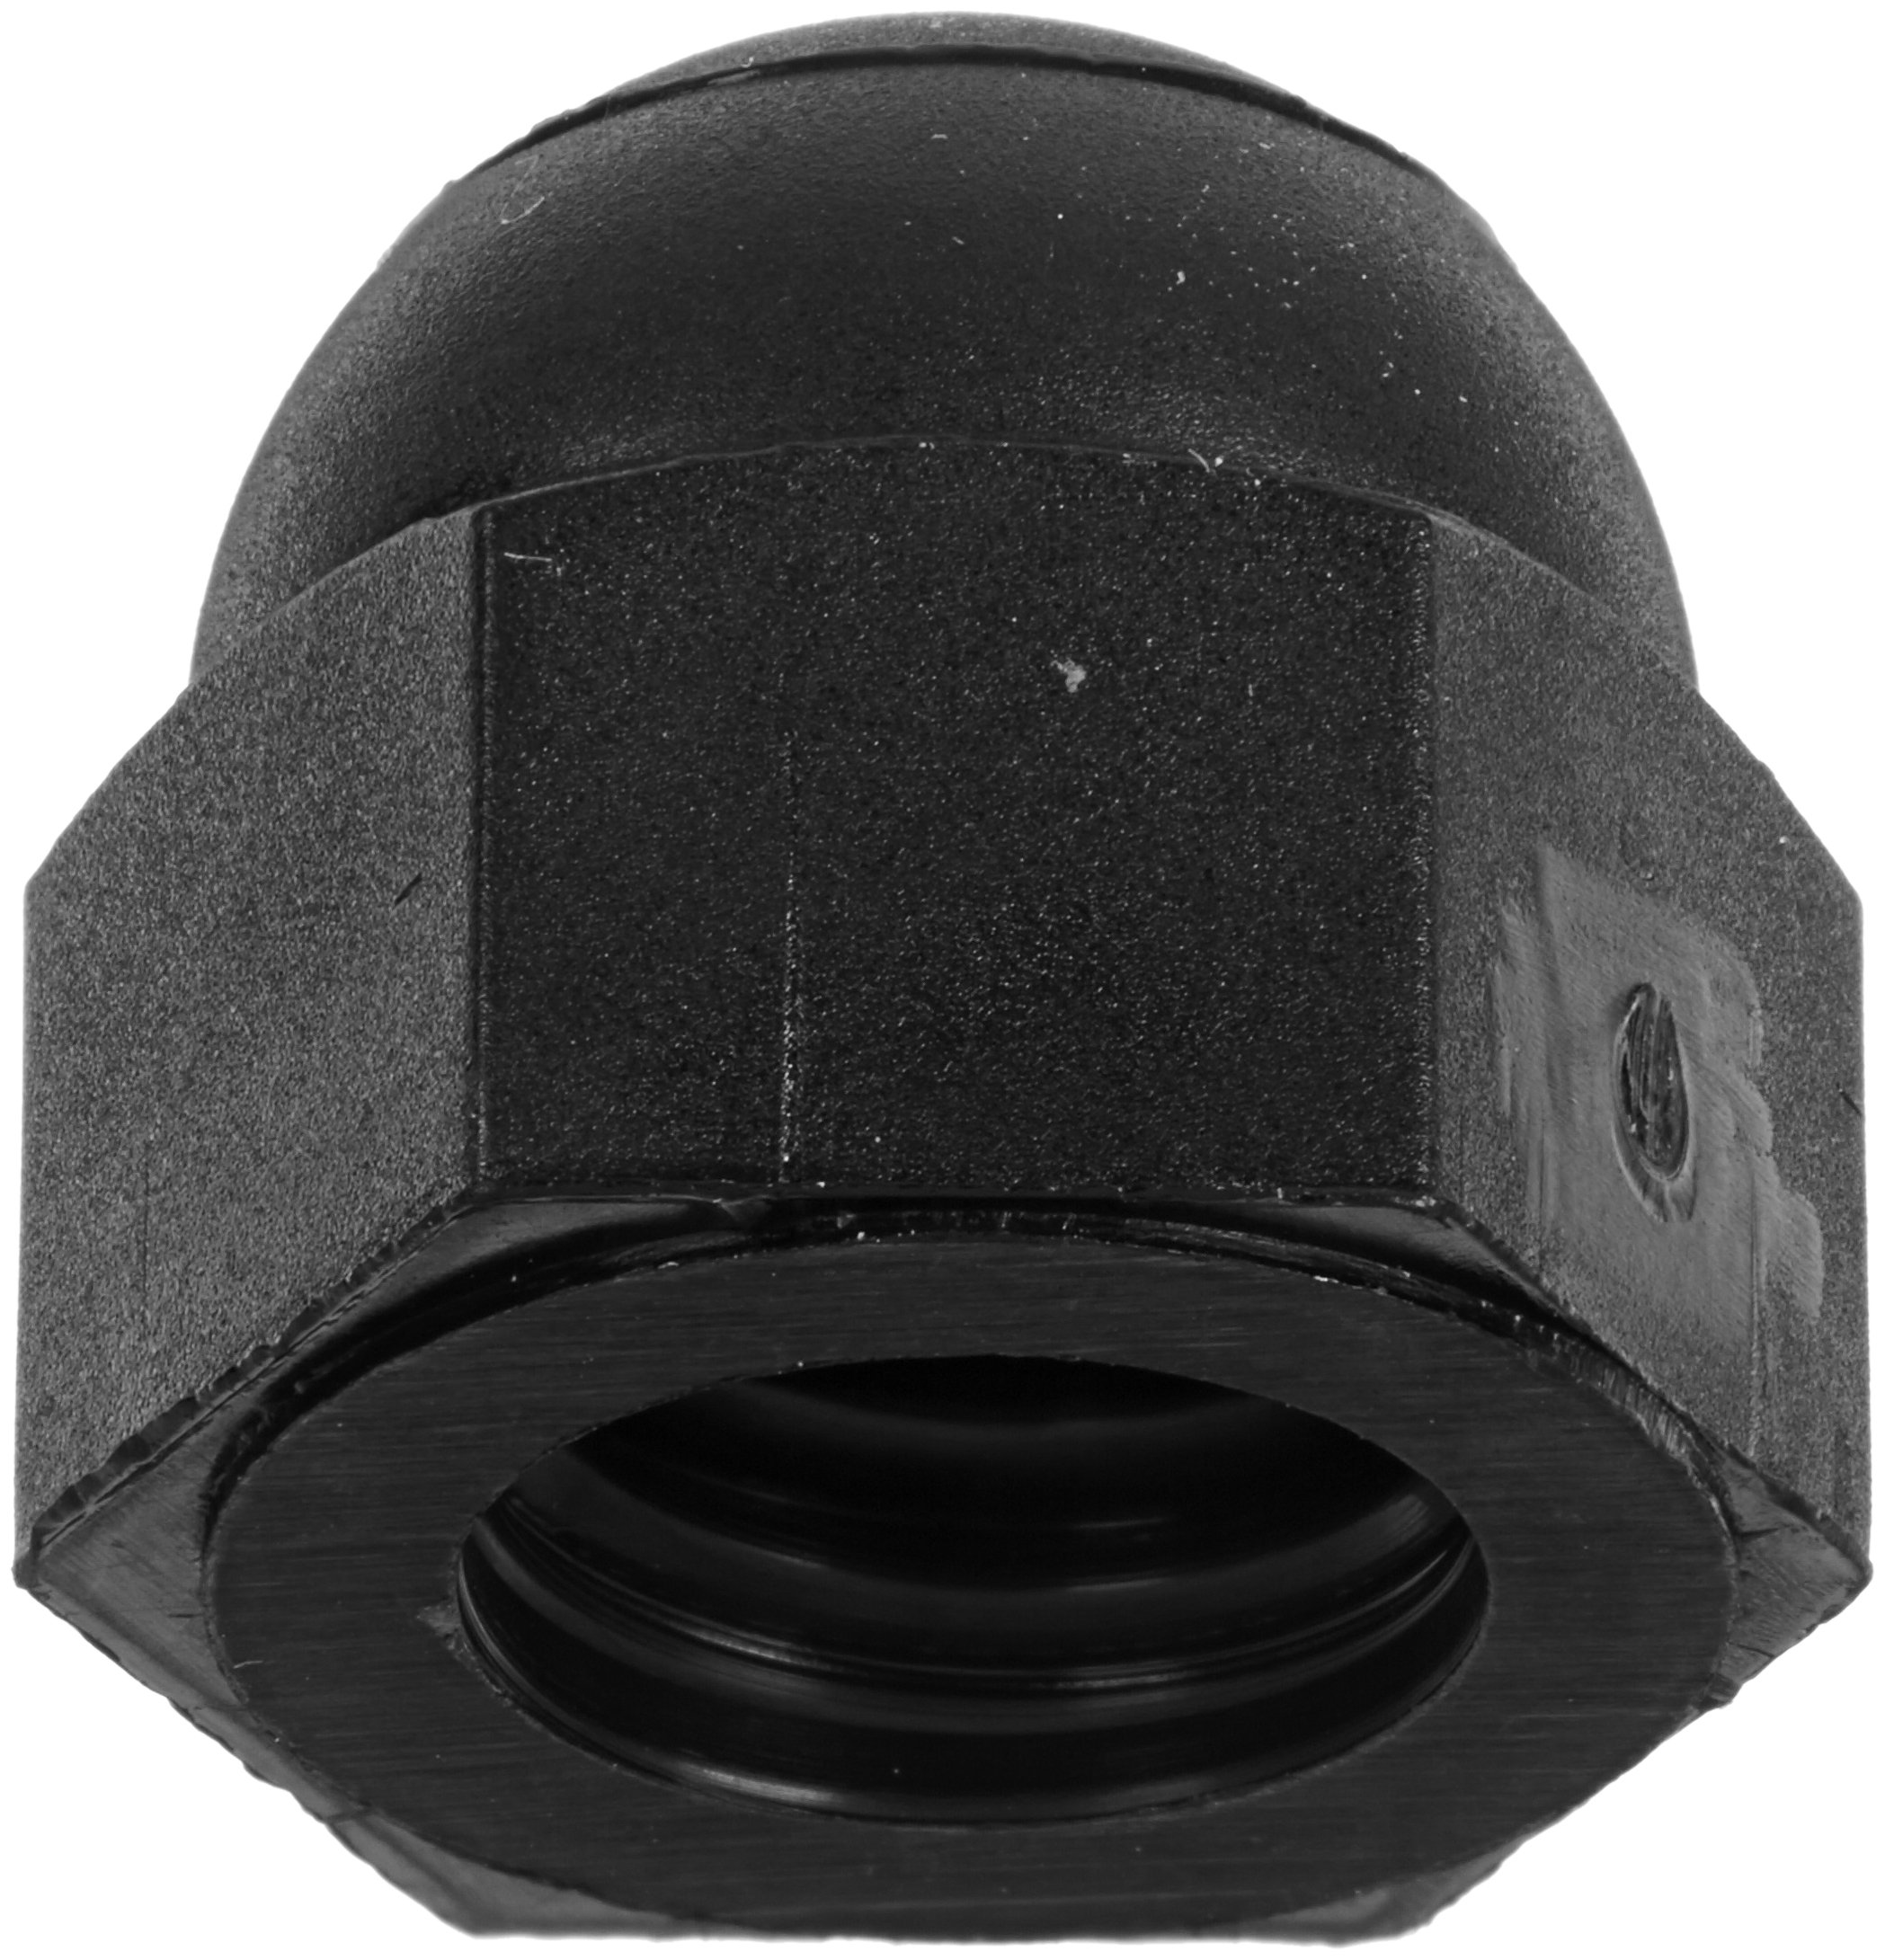 Nylon 6/6 Acorn Nut, USA Made, Black, 5/16''-18 Thread Size, 1/2'' Width Across Flats, 17/32'' Height, 23/64'' Minimum Thread Depth (Pack of 50) by Small Parts